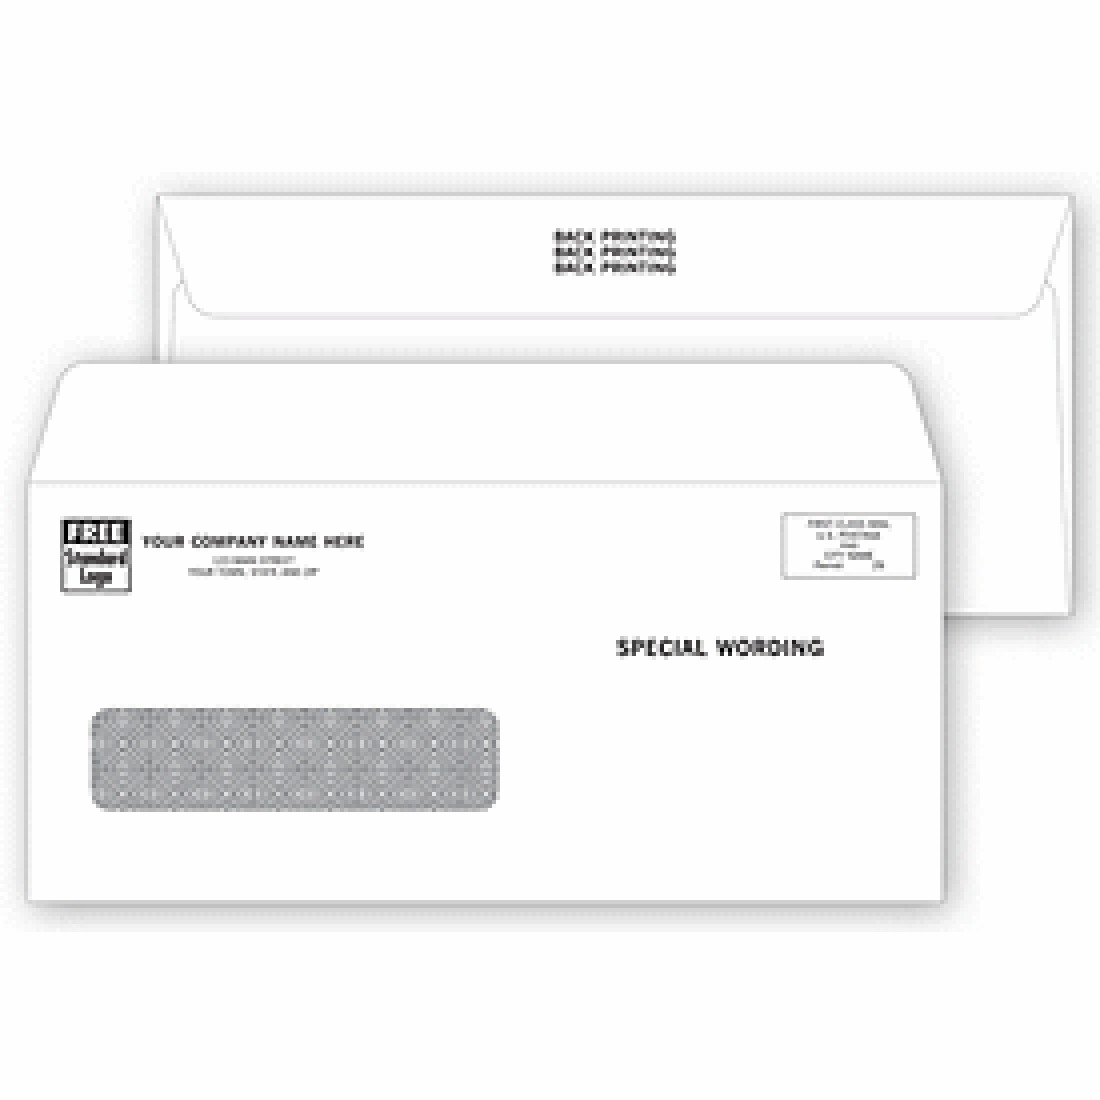 Confidential single window envelopes free shipping for Window envelopes